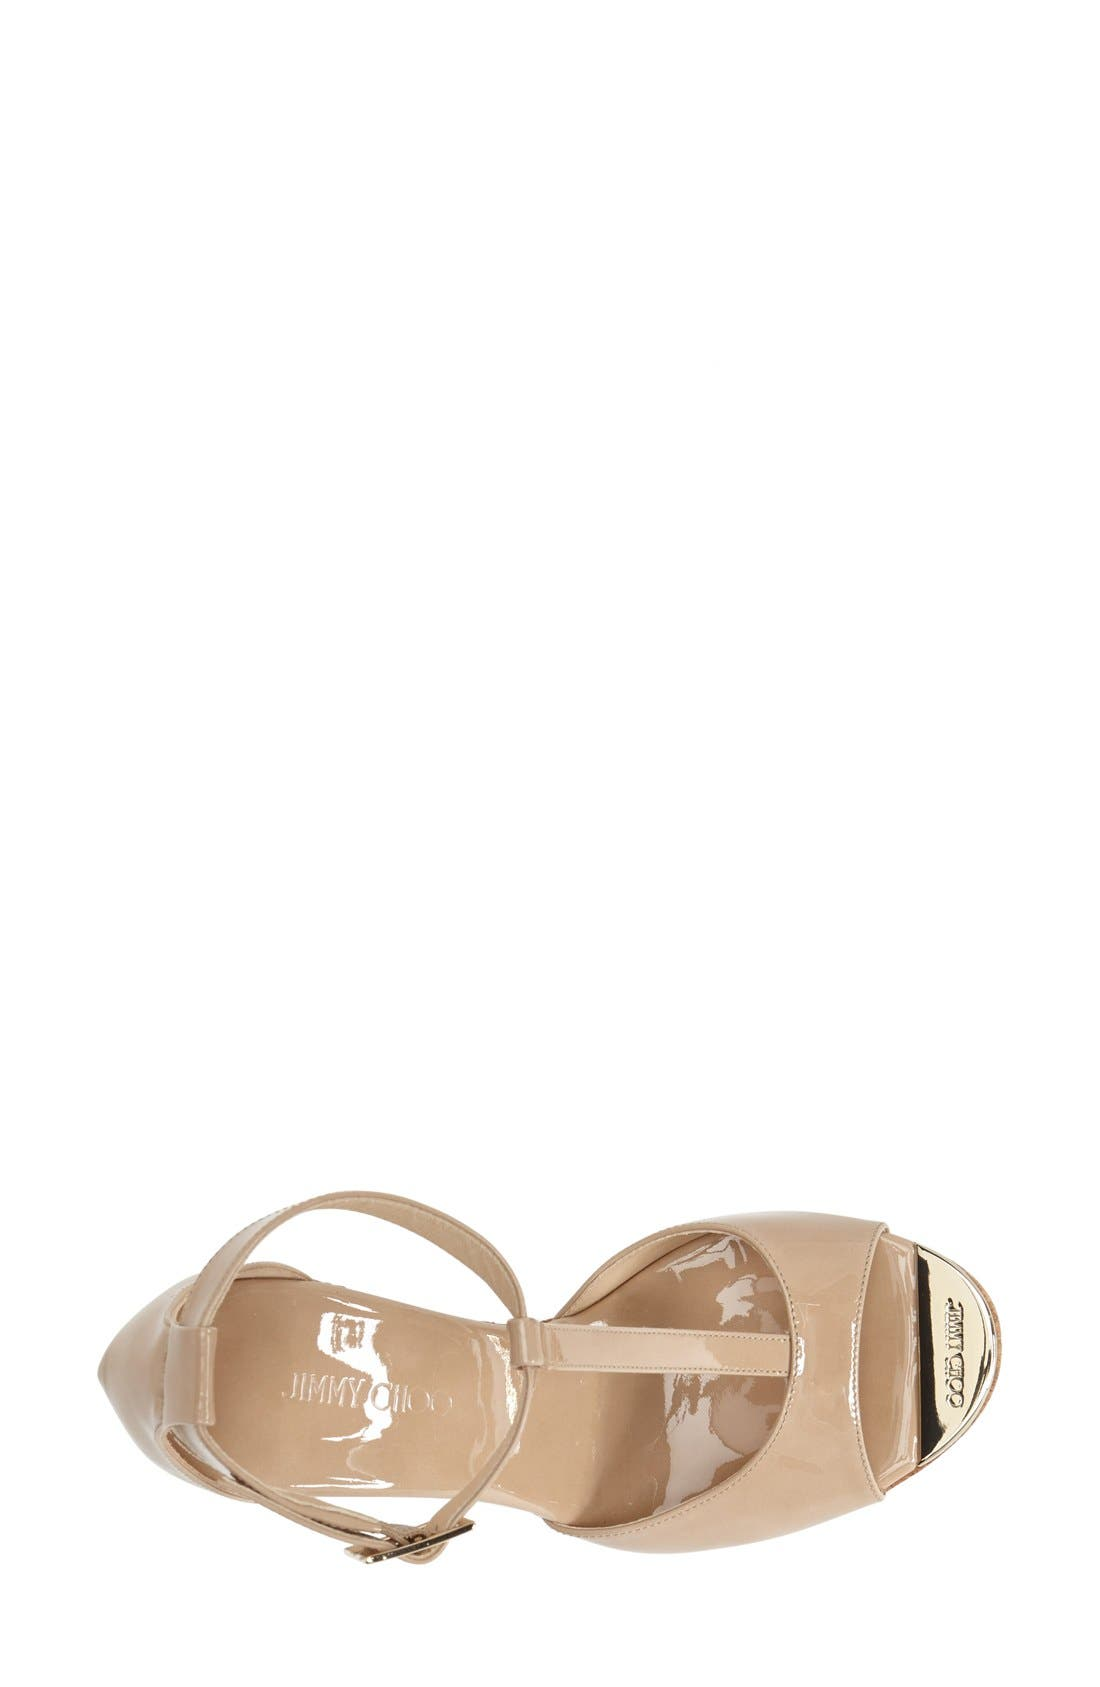 Alternate Image 3  - Jimmy Choo 'Pela' Cork Wedge Sandal (Women)